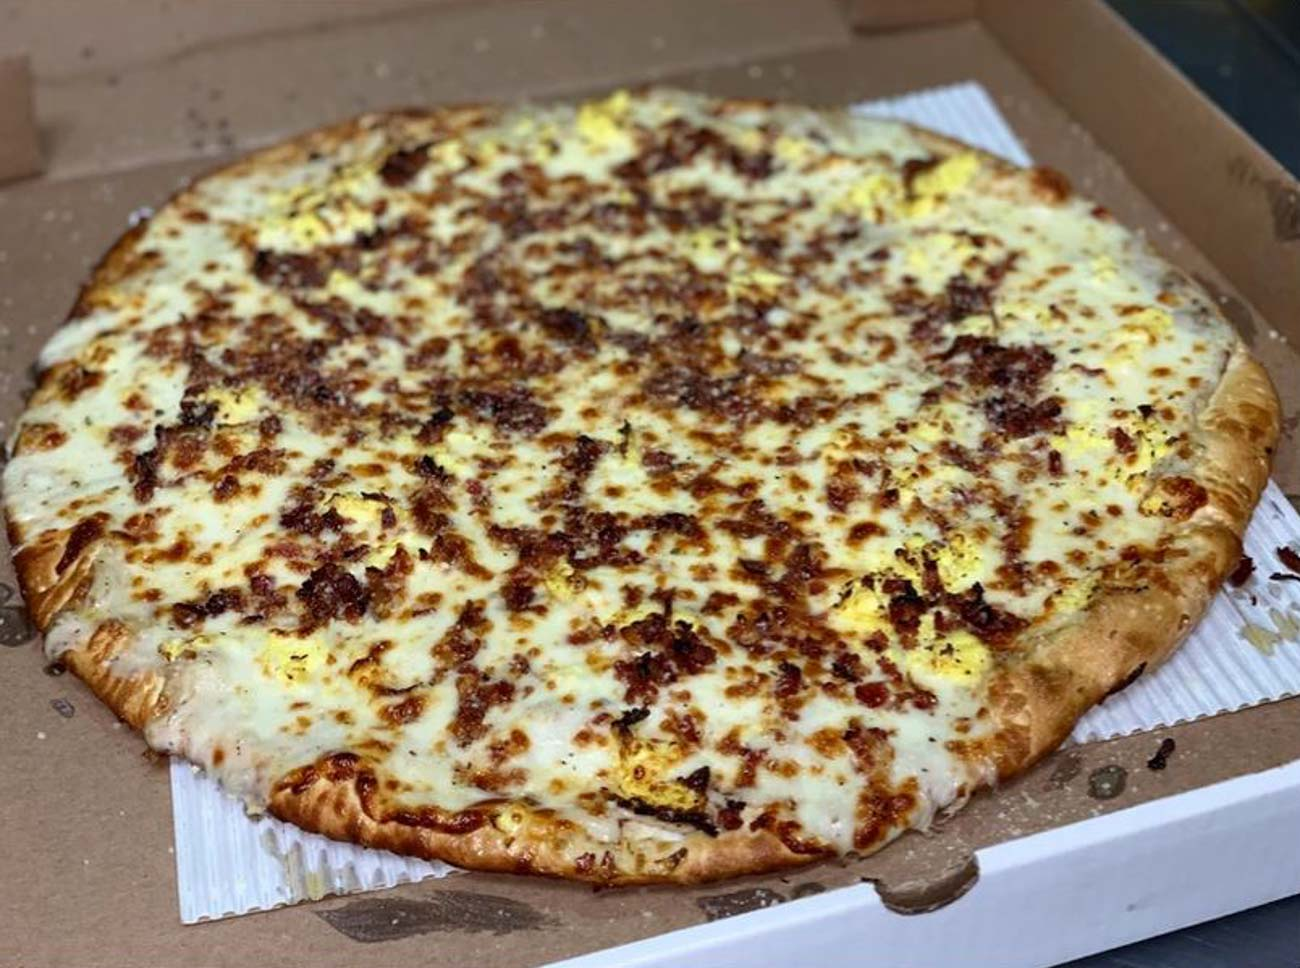 Breakfast Pizza: homemade sausage gravy, scrambled eggs, bacon, and melted cheese / Image courtesy of Poseidon's Pizza Company // Published: 7.8.20